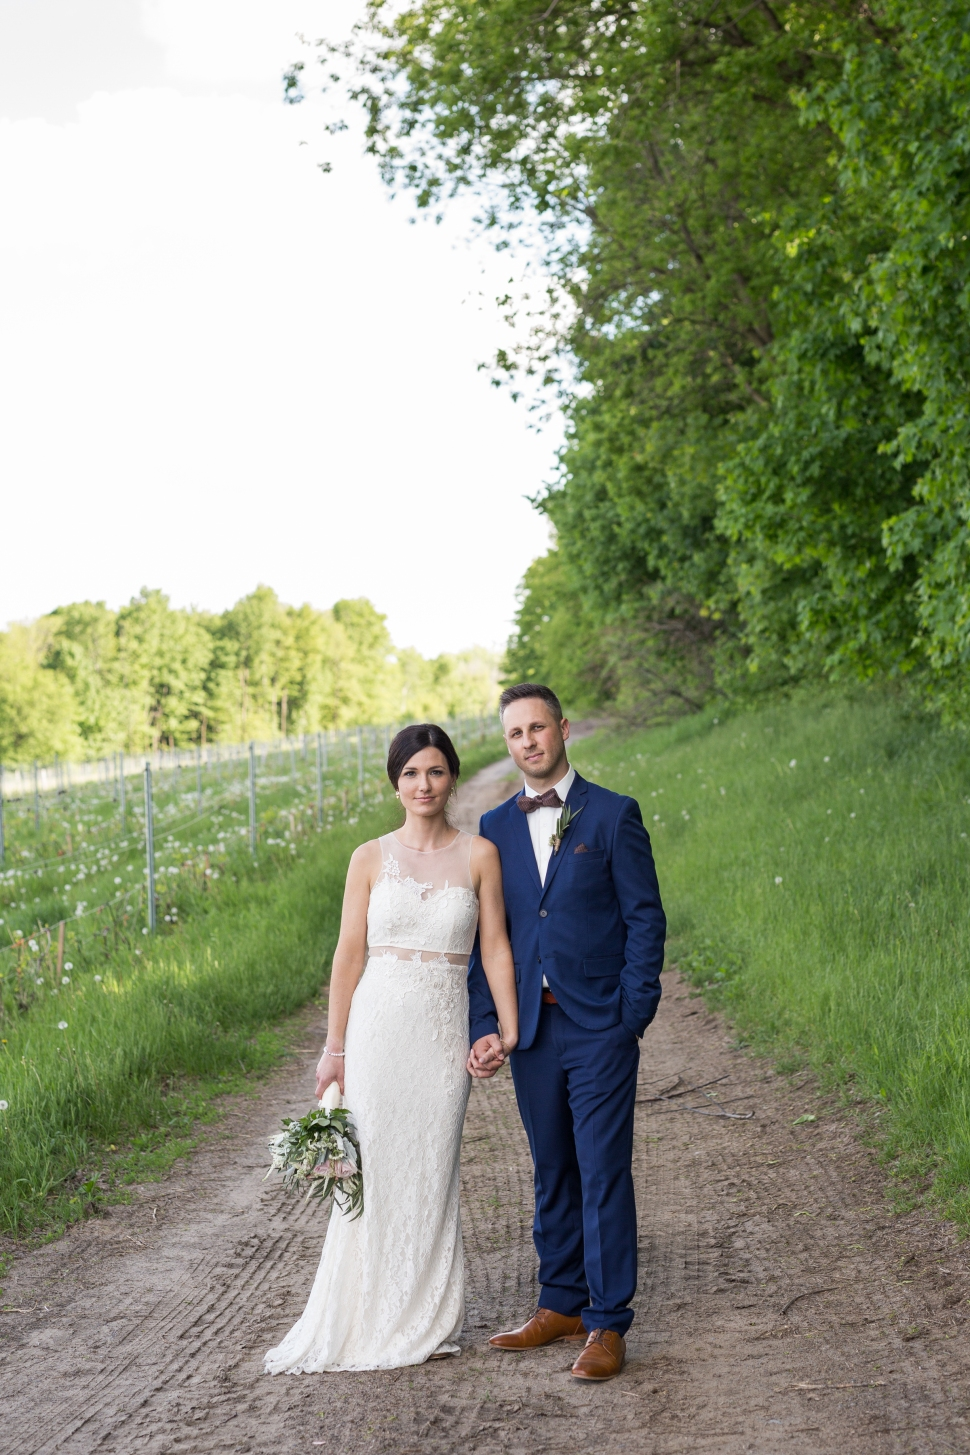 montreal_lifestyle_wedding_photographer_photography_orchard_winery_photographe_mariage_vignoble_rougemont-40